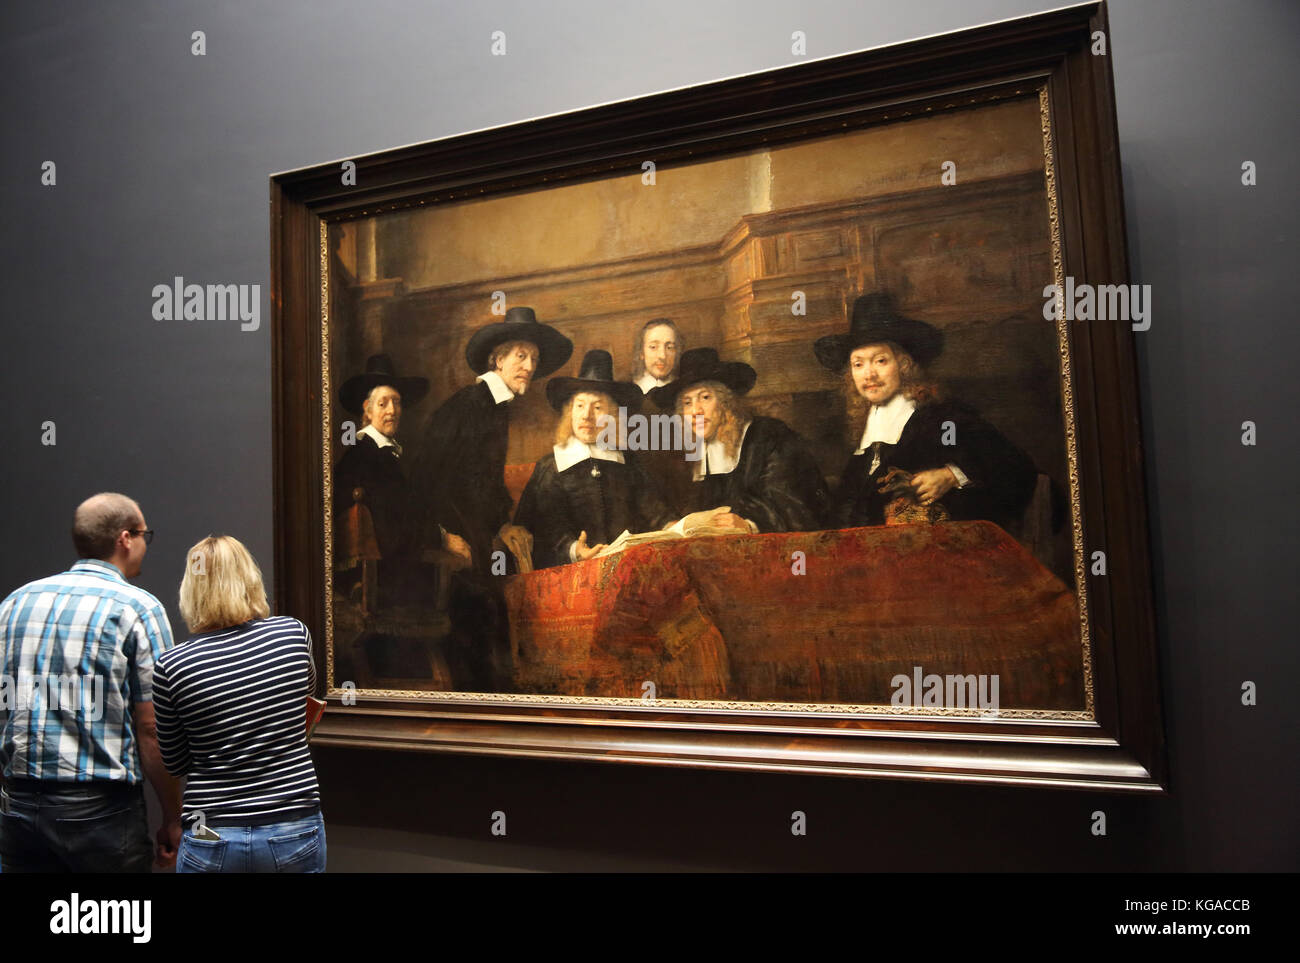 The Rembrandt gallery in the Rijksmuseum, in Amsterdam, the Netherlands - Stock Image